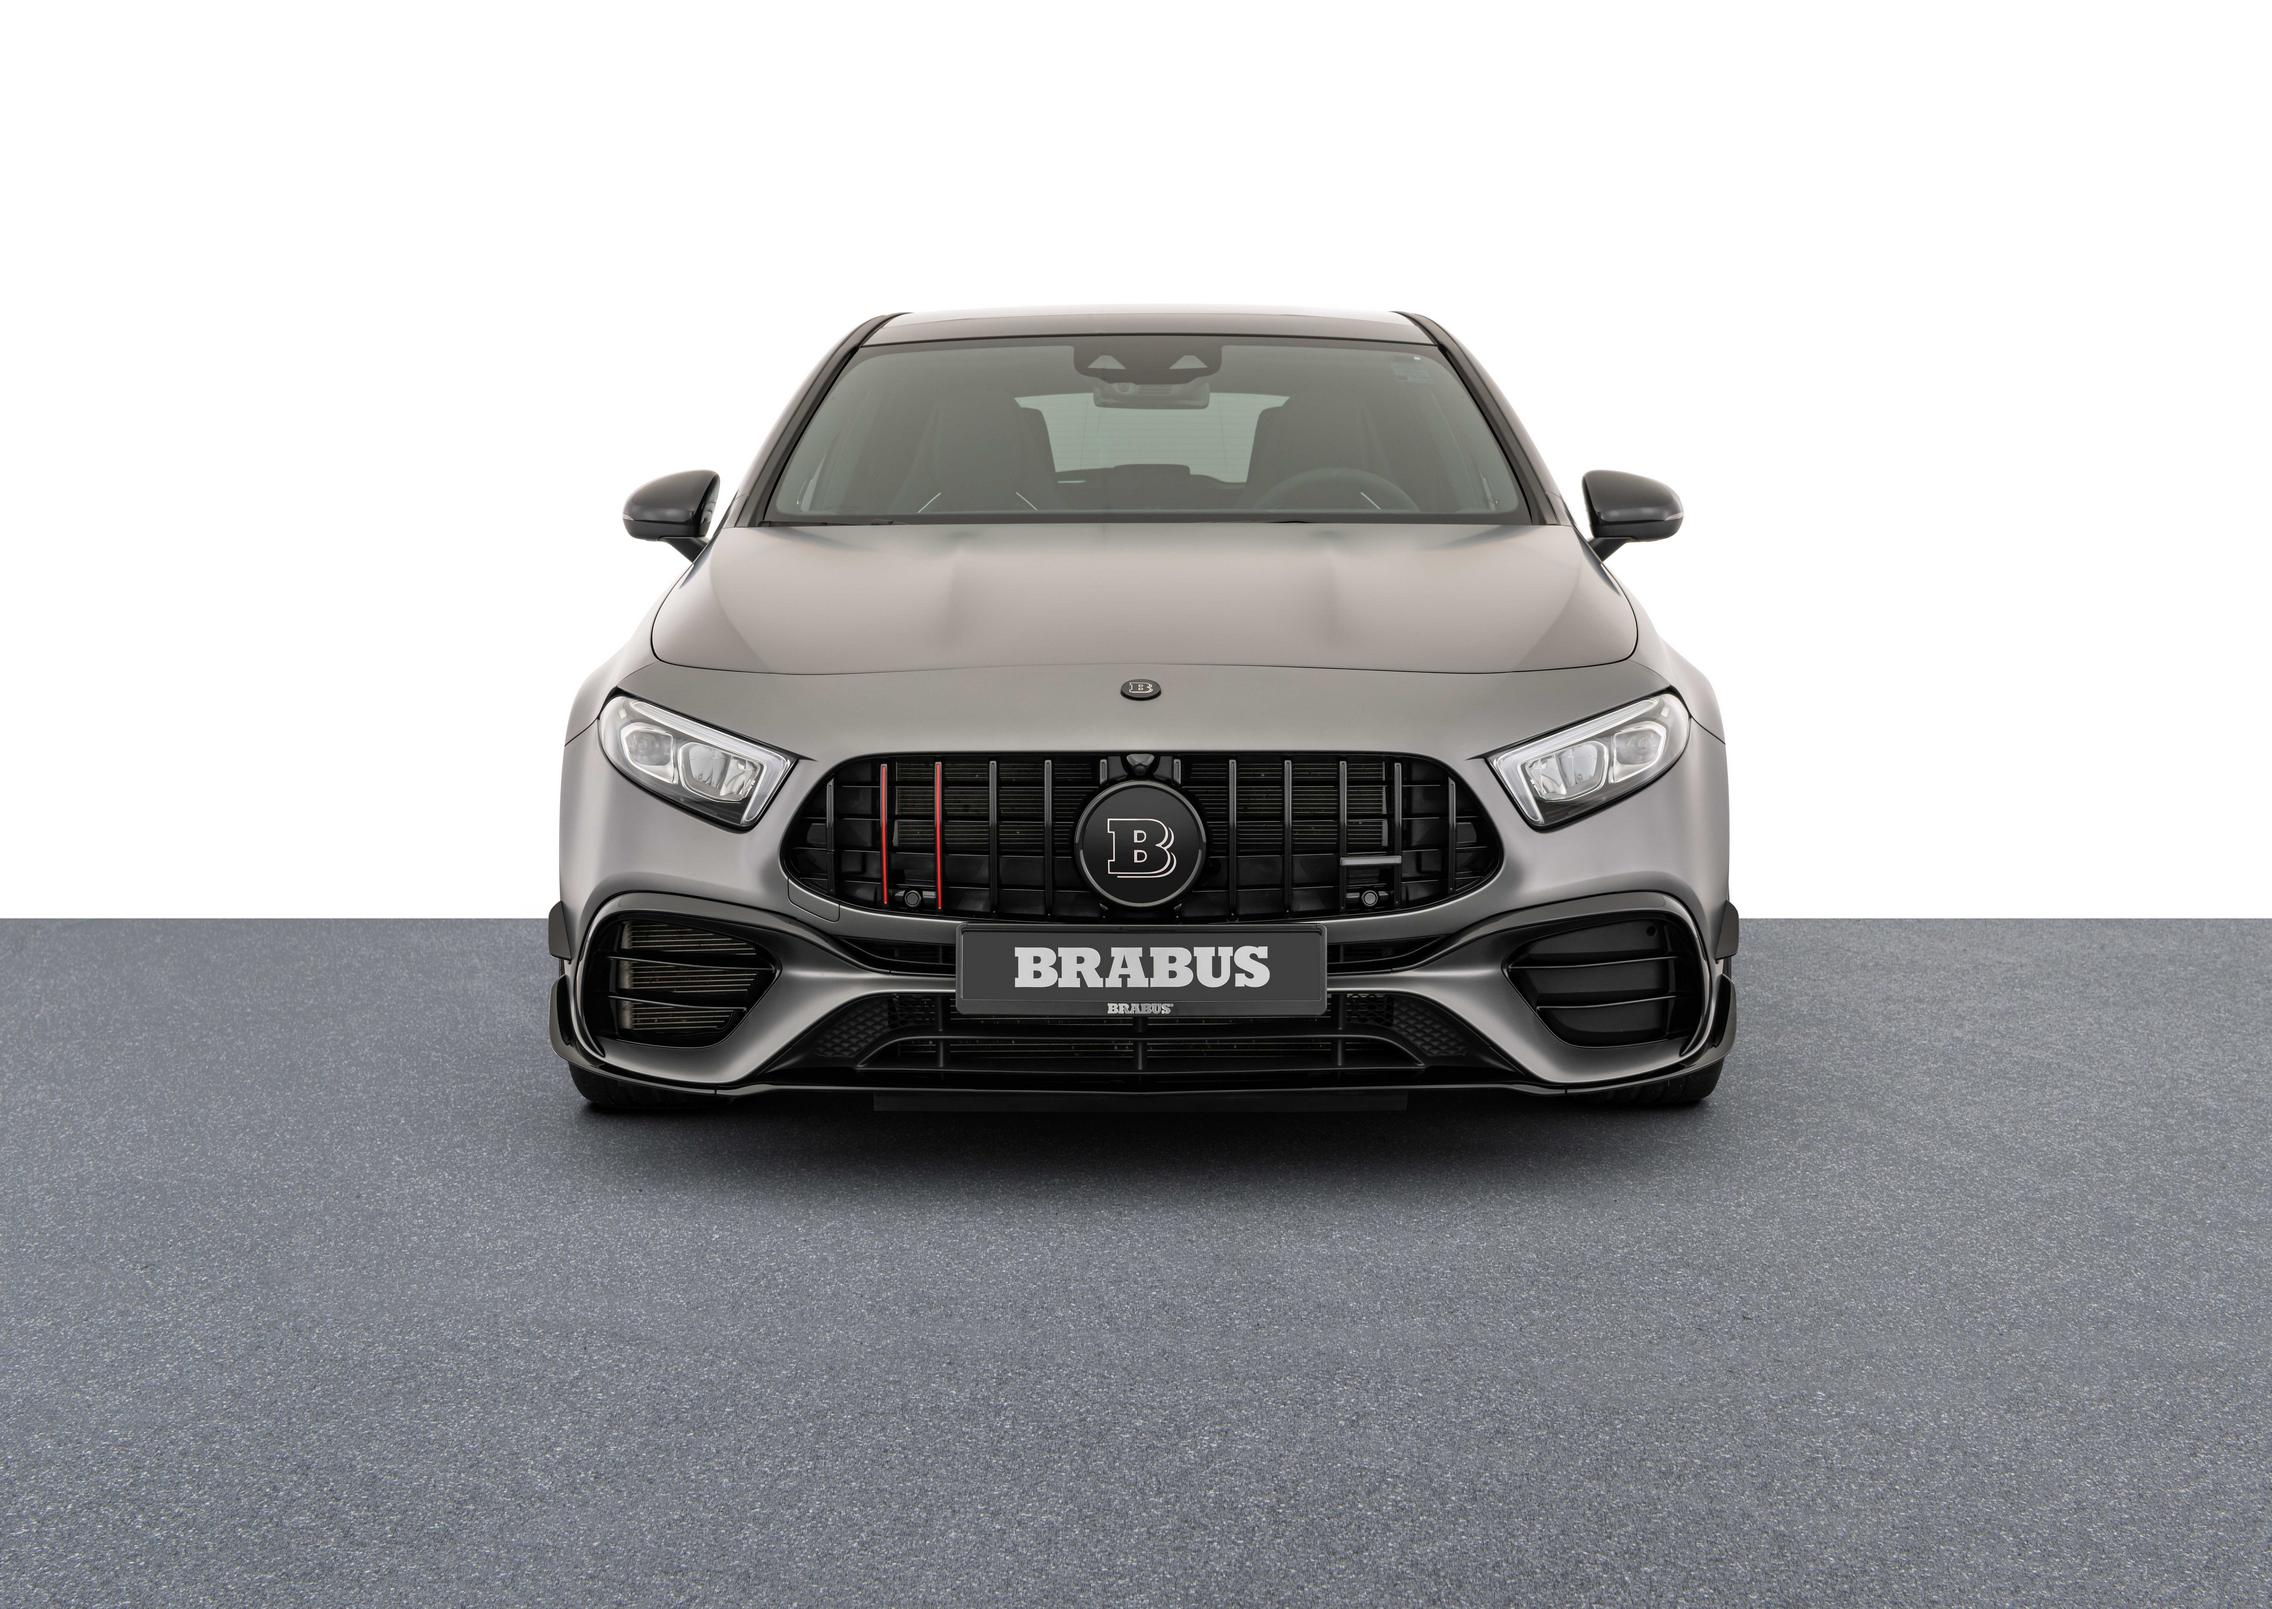 Brabus A45 S AMG front